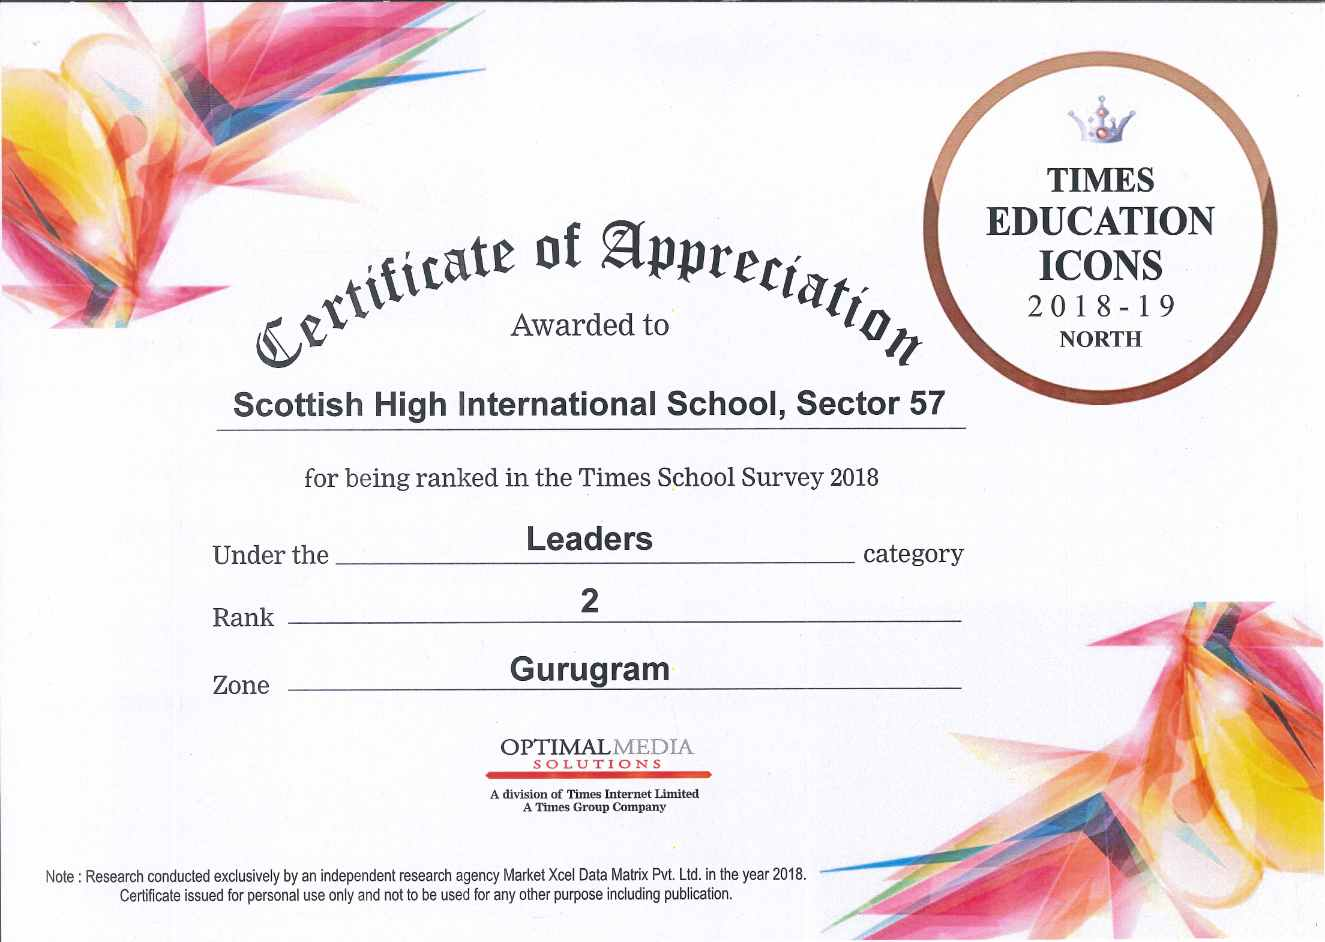 Best School in Gurgaon Award by Times of India 2018